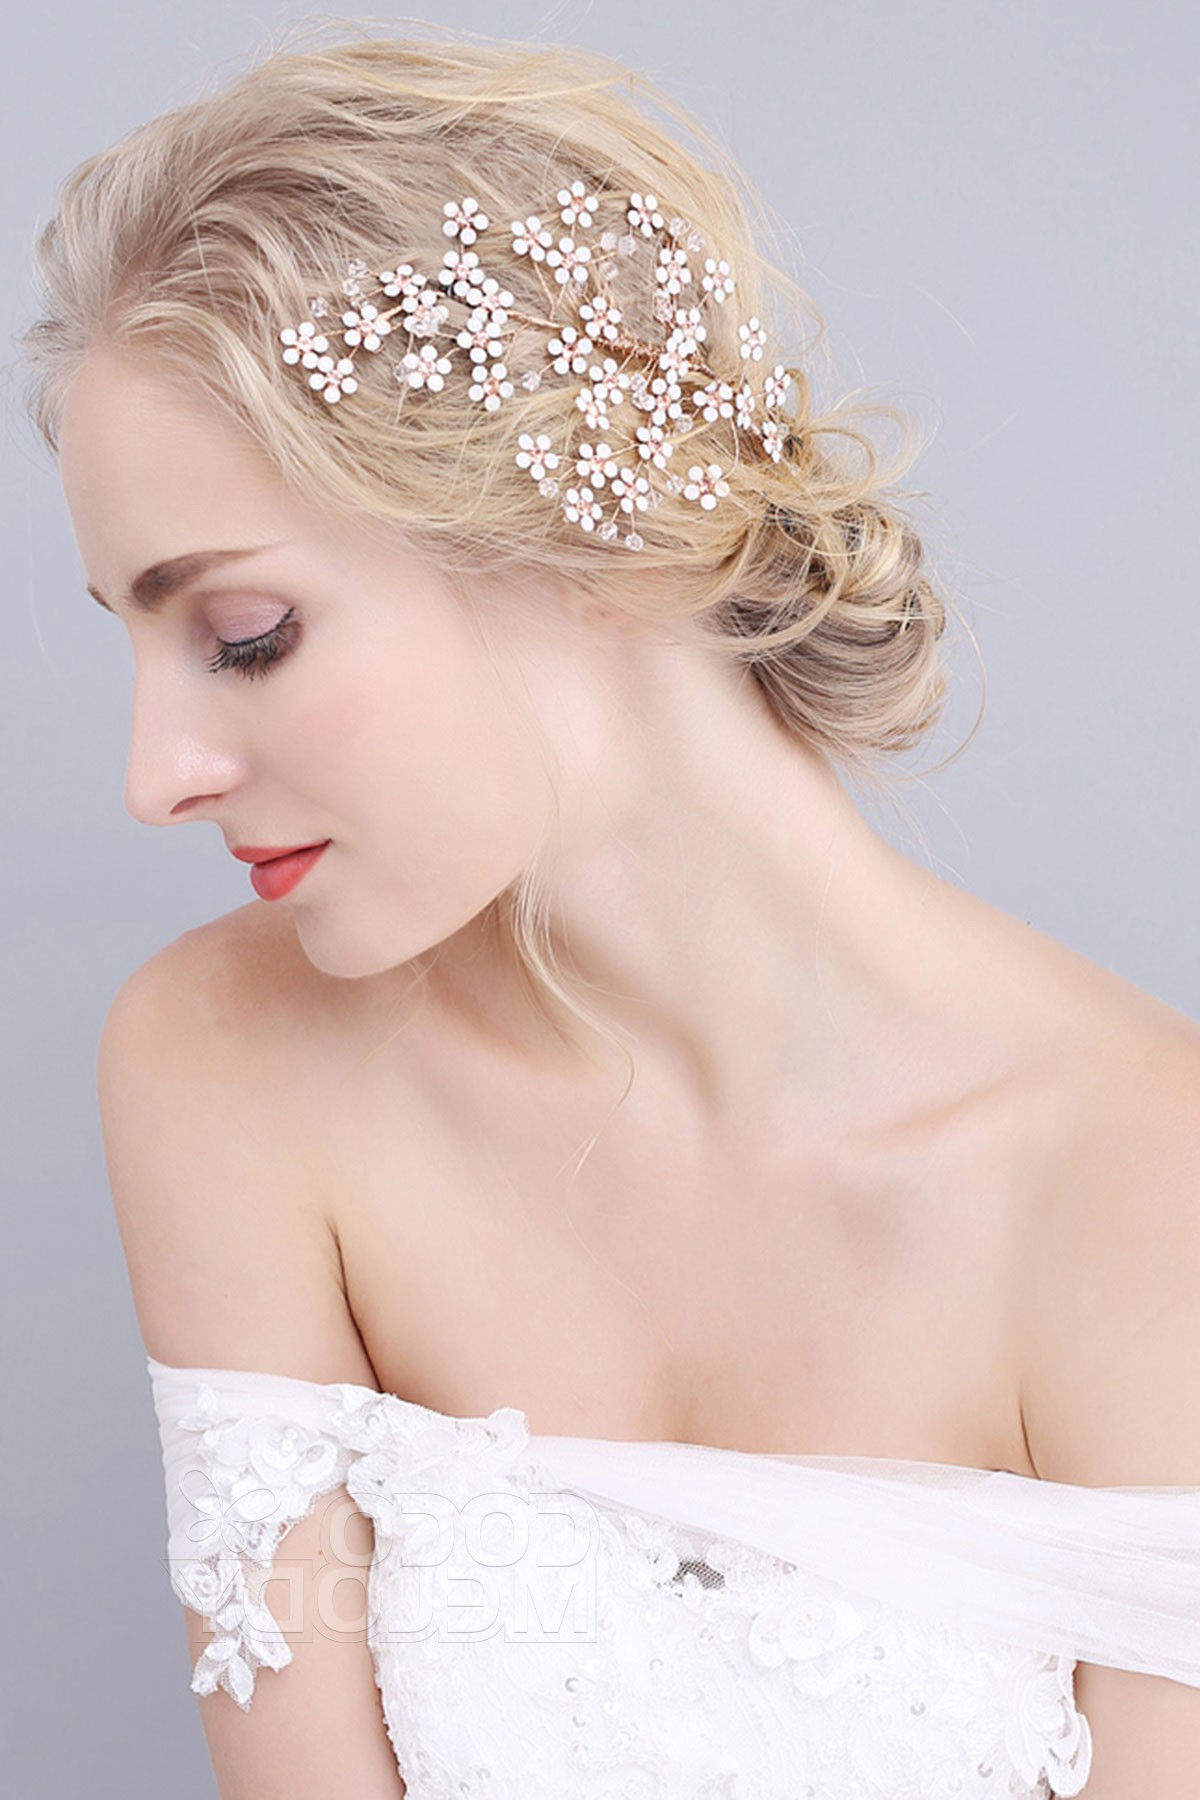 Most Current Bedazzled Chic Hairstyles For Wedding Intended For Alloy Wedding Hair Combs With Rhinestone Crystal Sah (View 13 of 20)